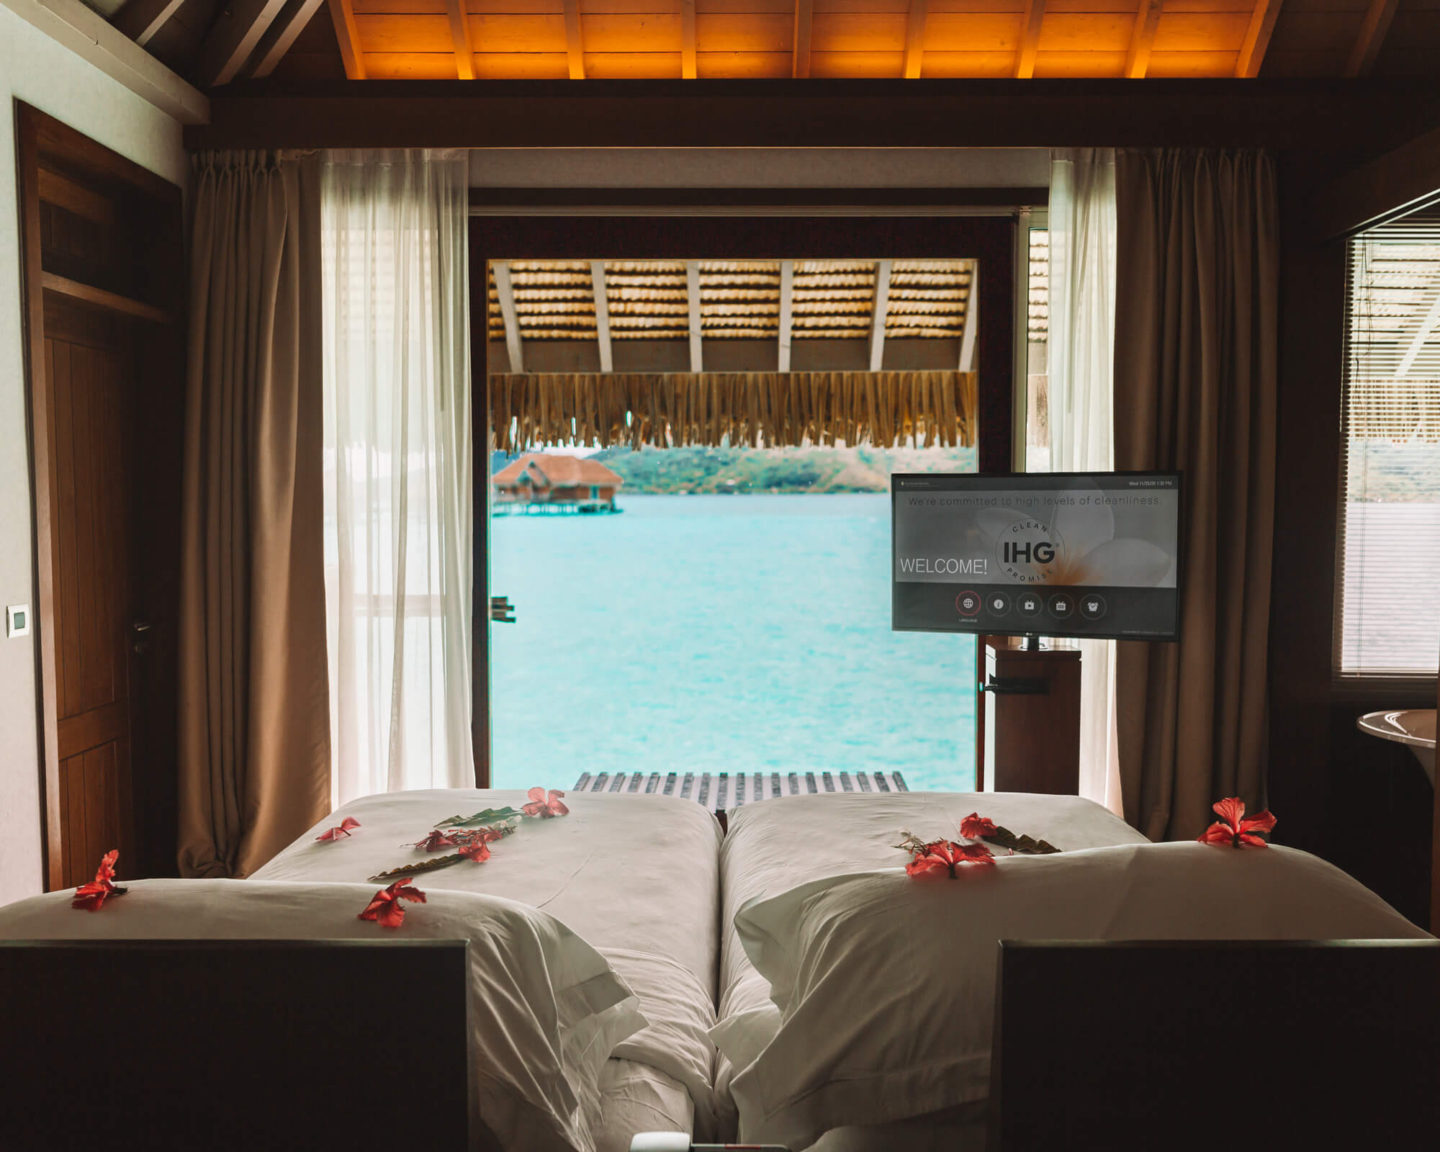 floor to ceiling window with turquoise water view in overwater bungalow at intercontinental thalasso in bora bora